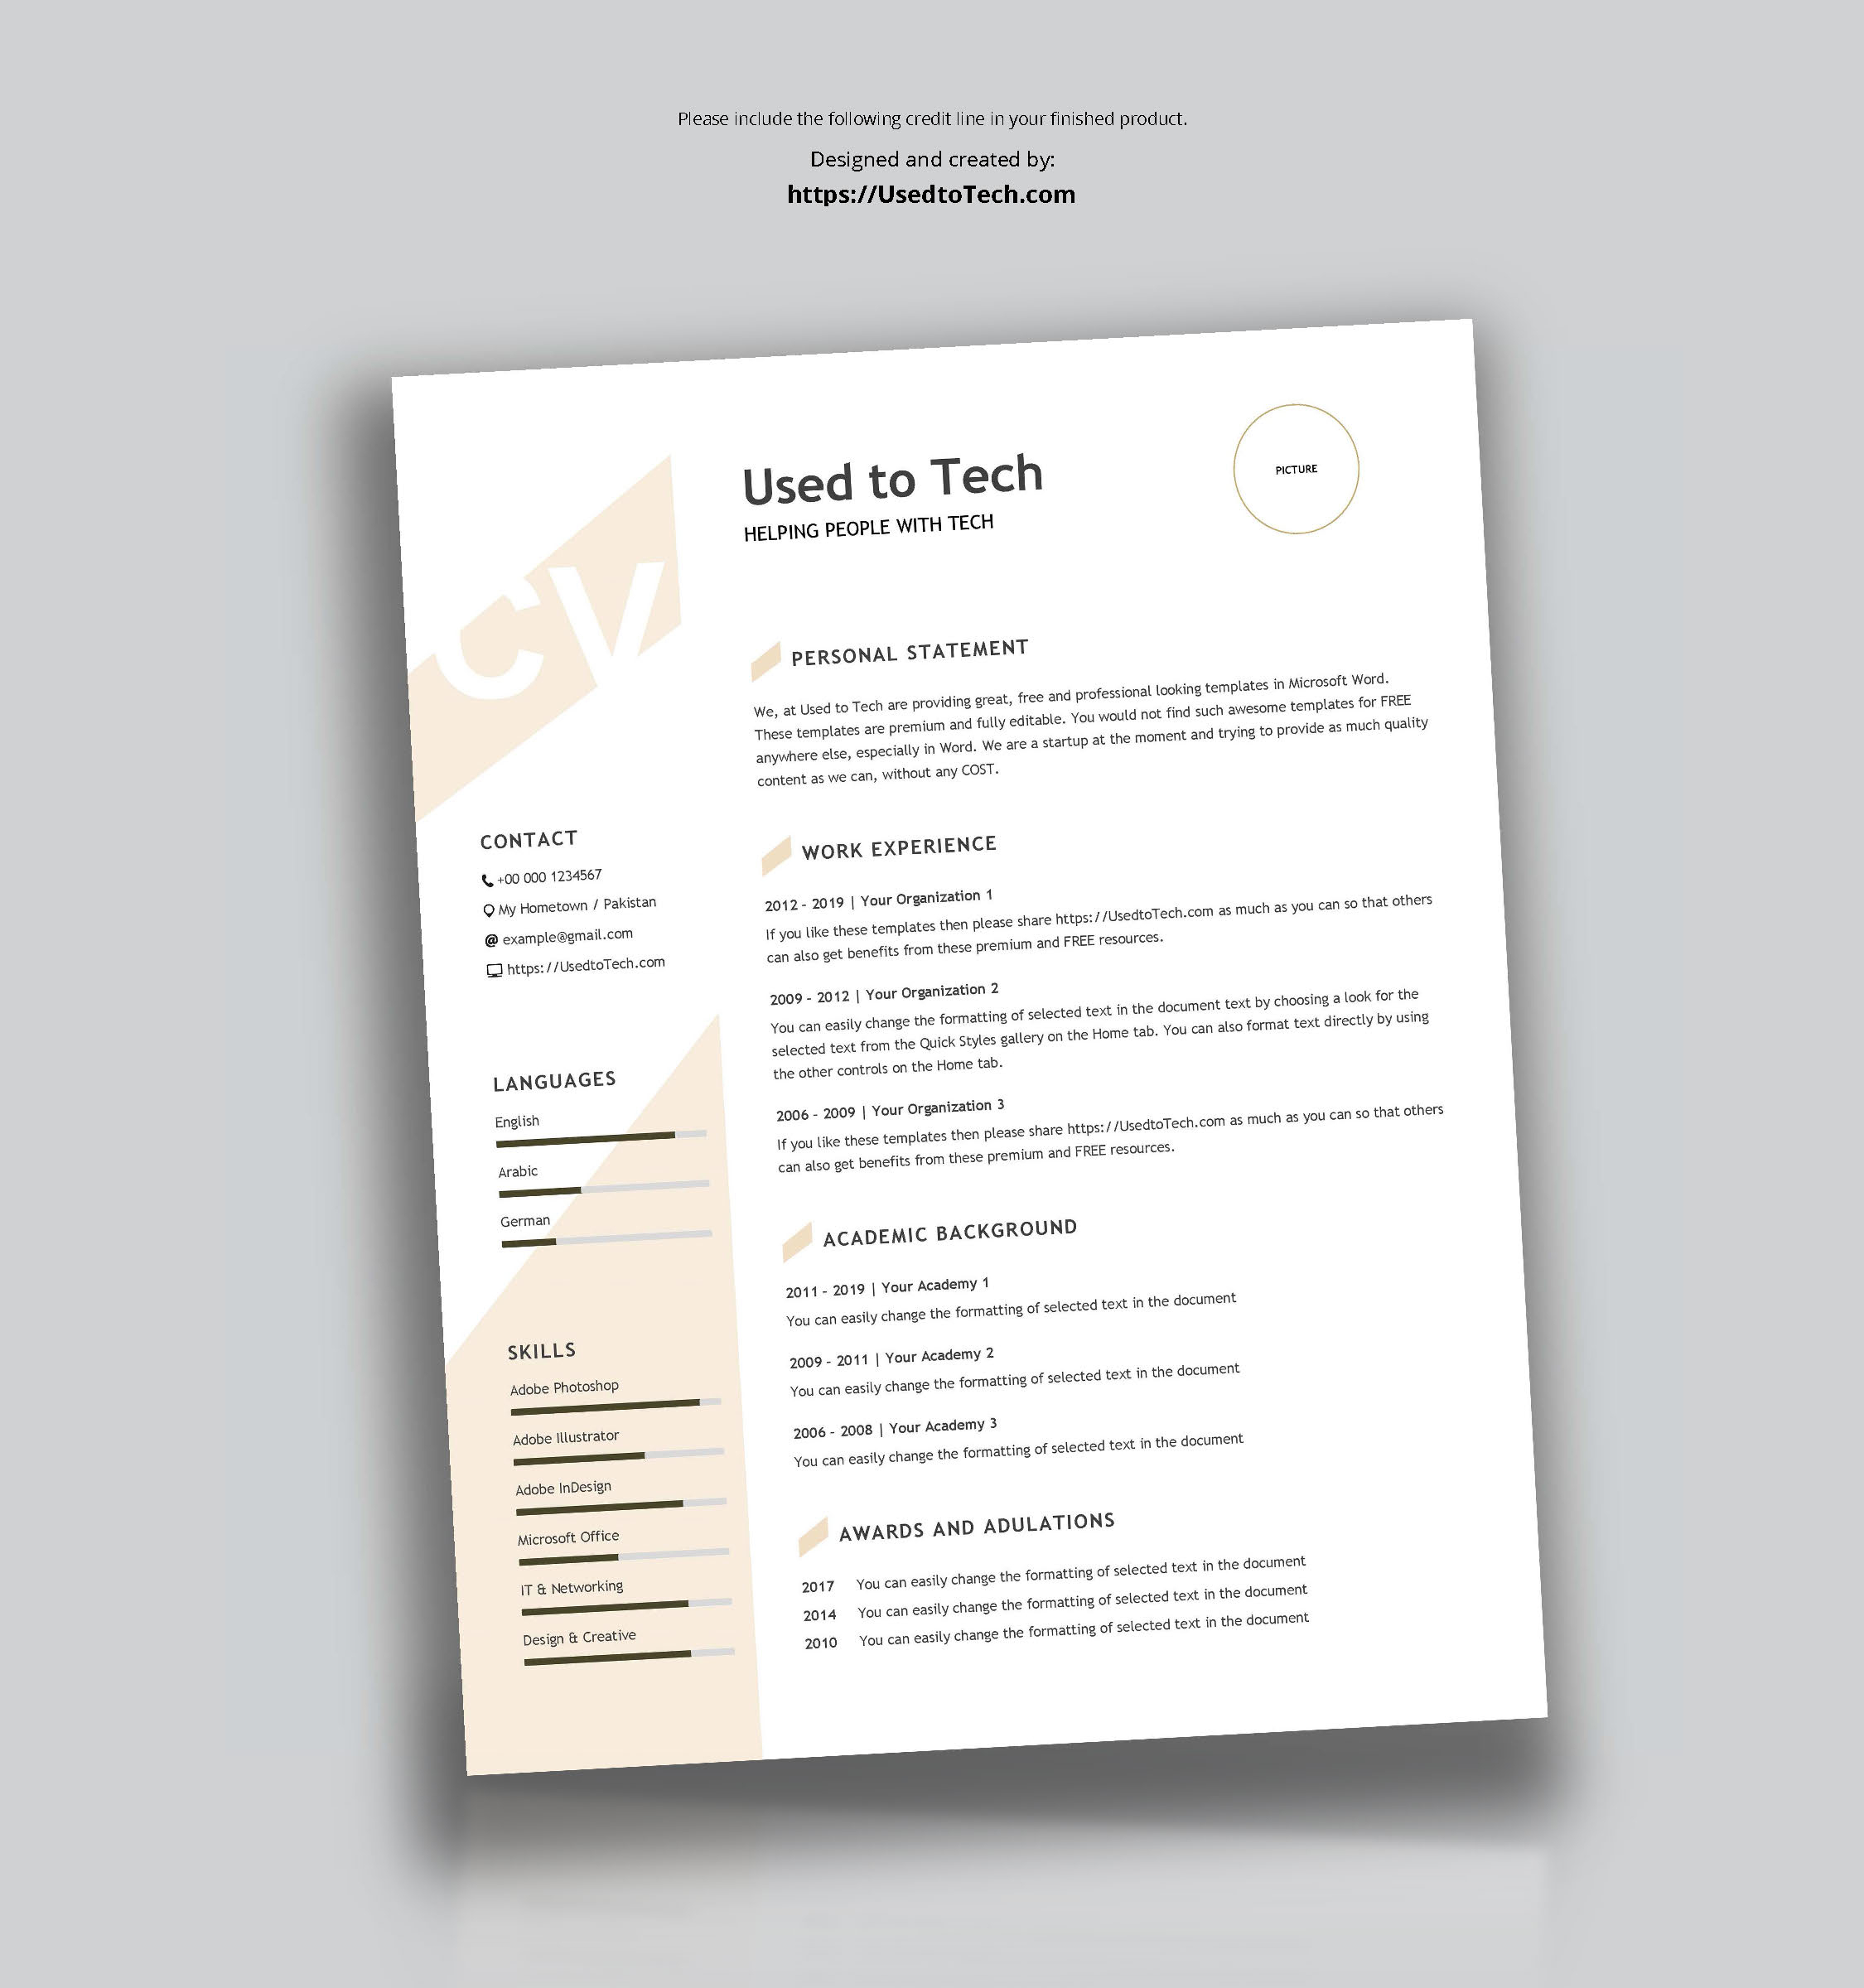 Modern Resume Template In Word Free - Used To Tech Regarding How To Find A Resume Template On Word